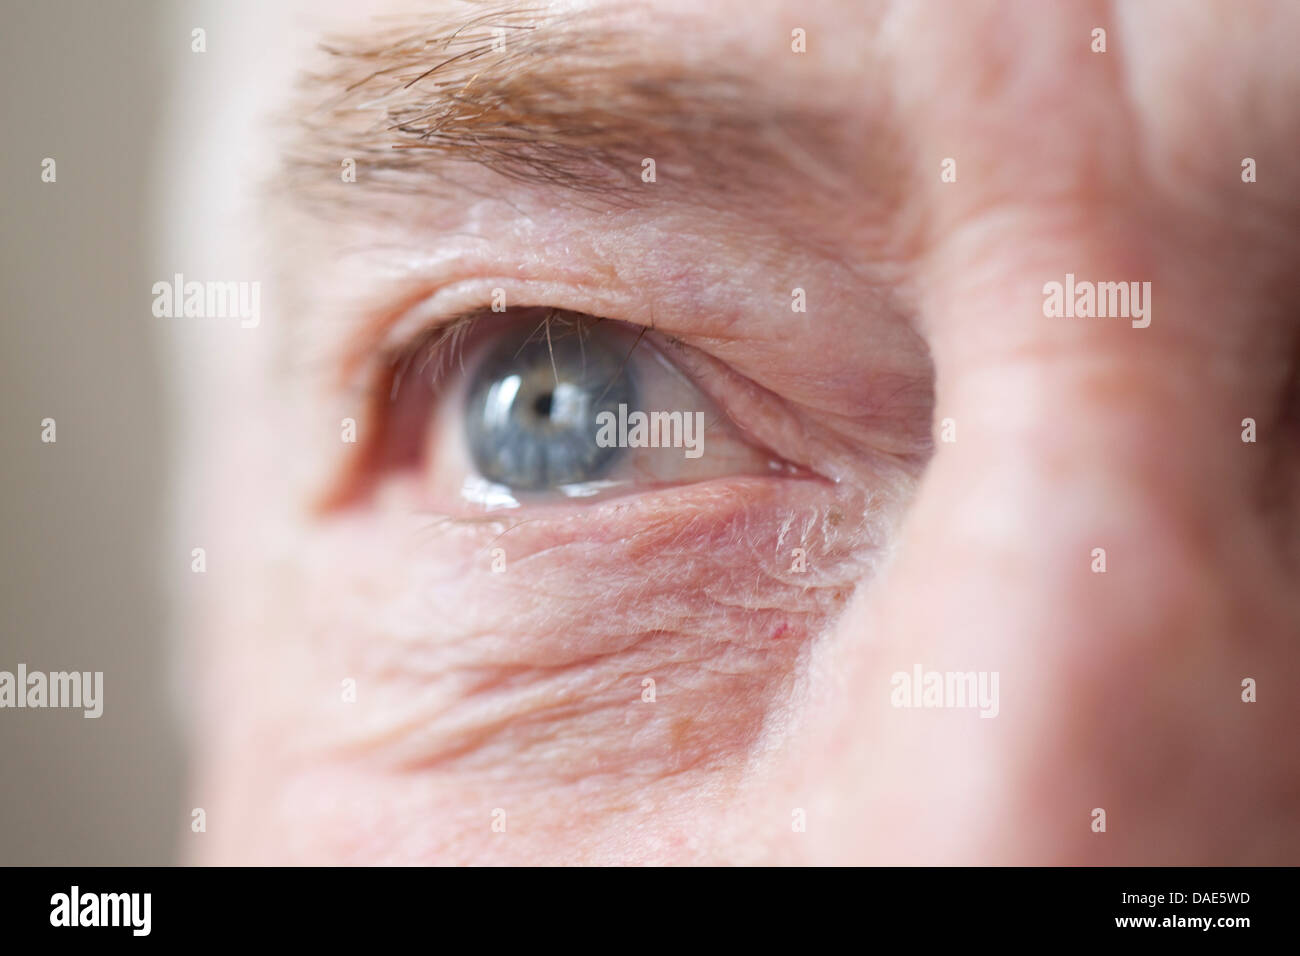 Senior man's eye, close up - Stock Image